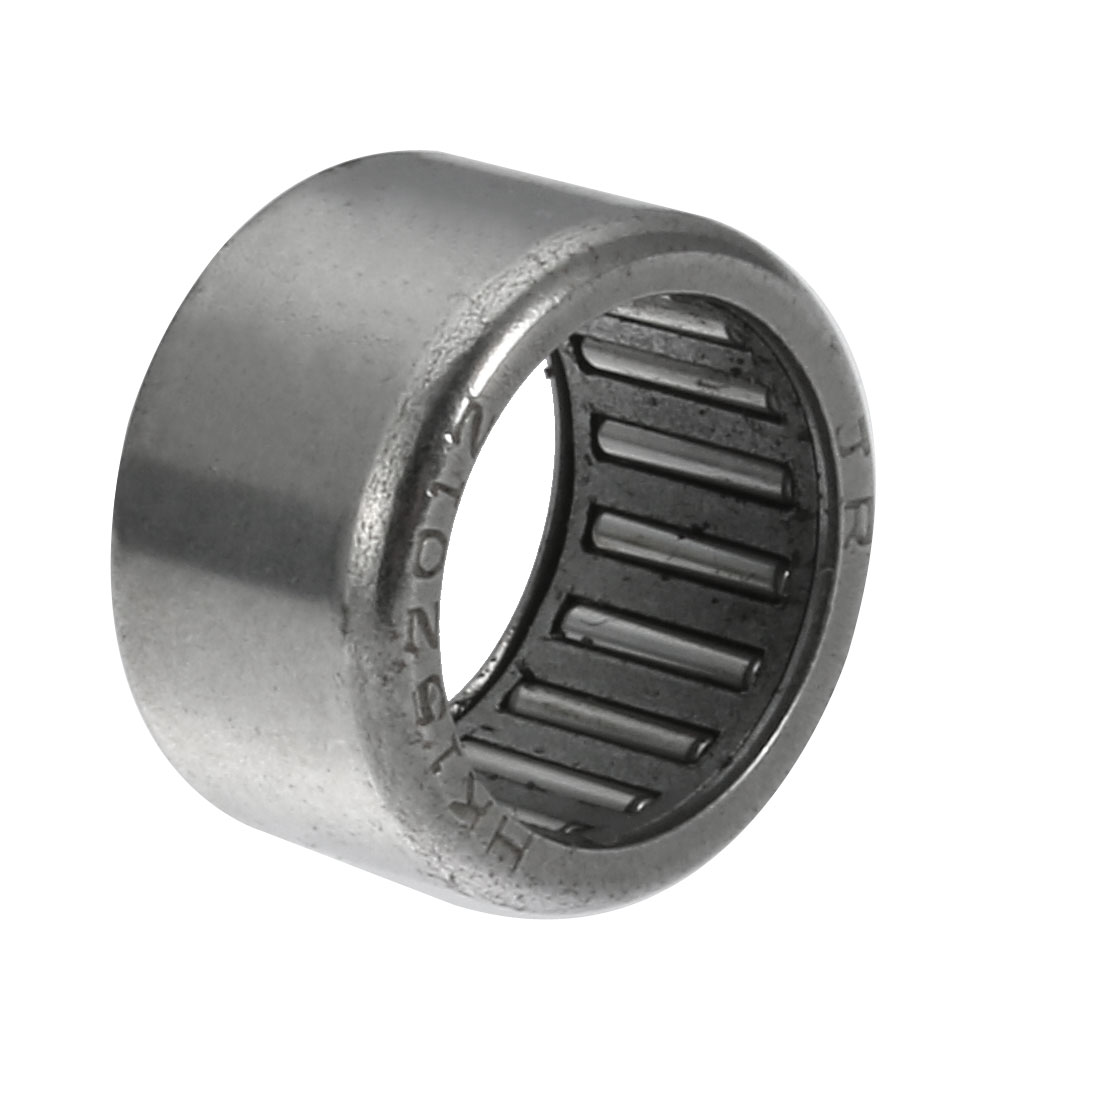 20mm OD Drawn Cup Needle Roller Bearing for 9403 Makita Belt Grinding Machine